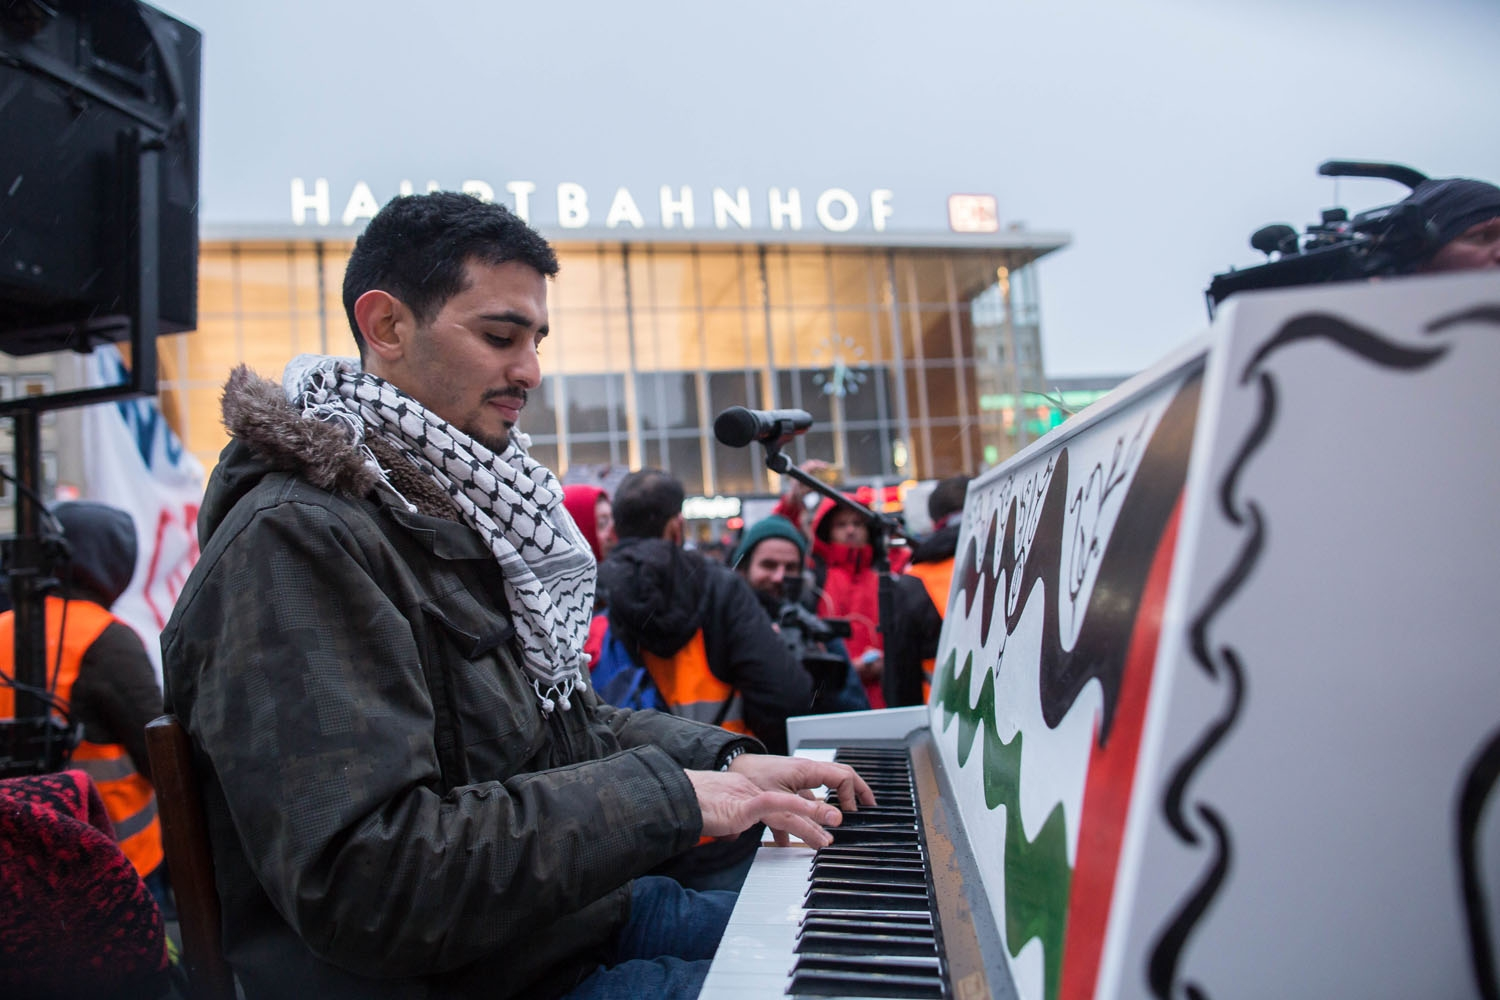 Syrian-Palestinian pianist Aeham Ahmad plays the piano during a demonstration of Syrian refugees against violence on January 16, 2016 in Cologne, western Germany